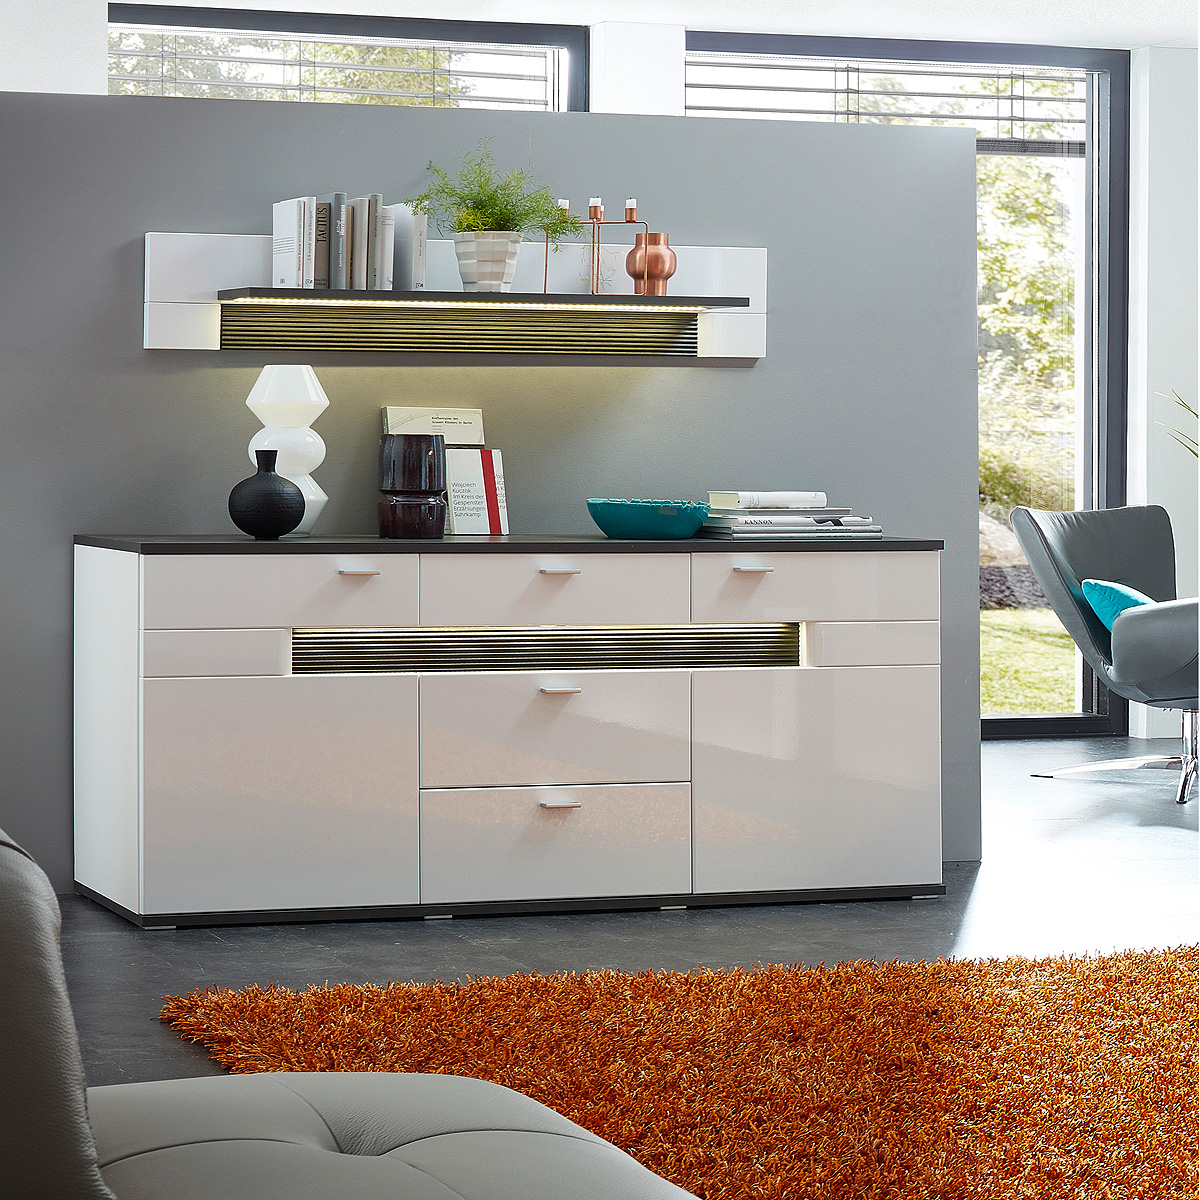 sideboard madisons kommode anrichte wei hochglanz matt und anthrazit mit led ebay. Black Bedroom Furniture Sets. Home Design Ideas